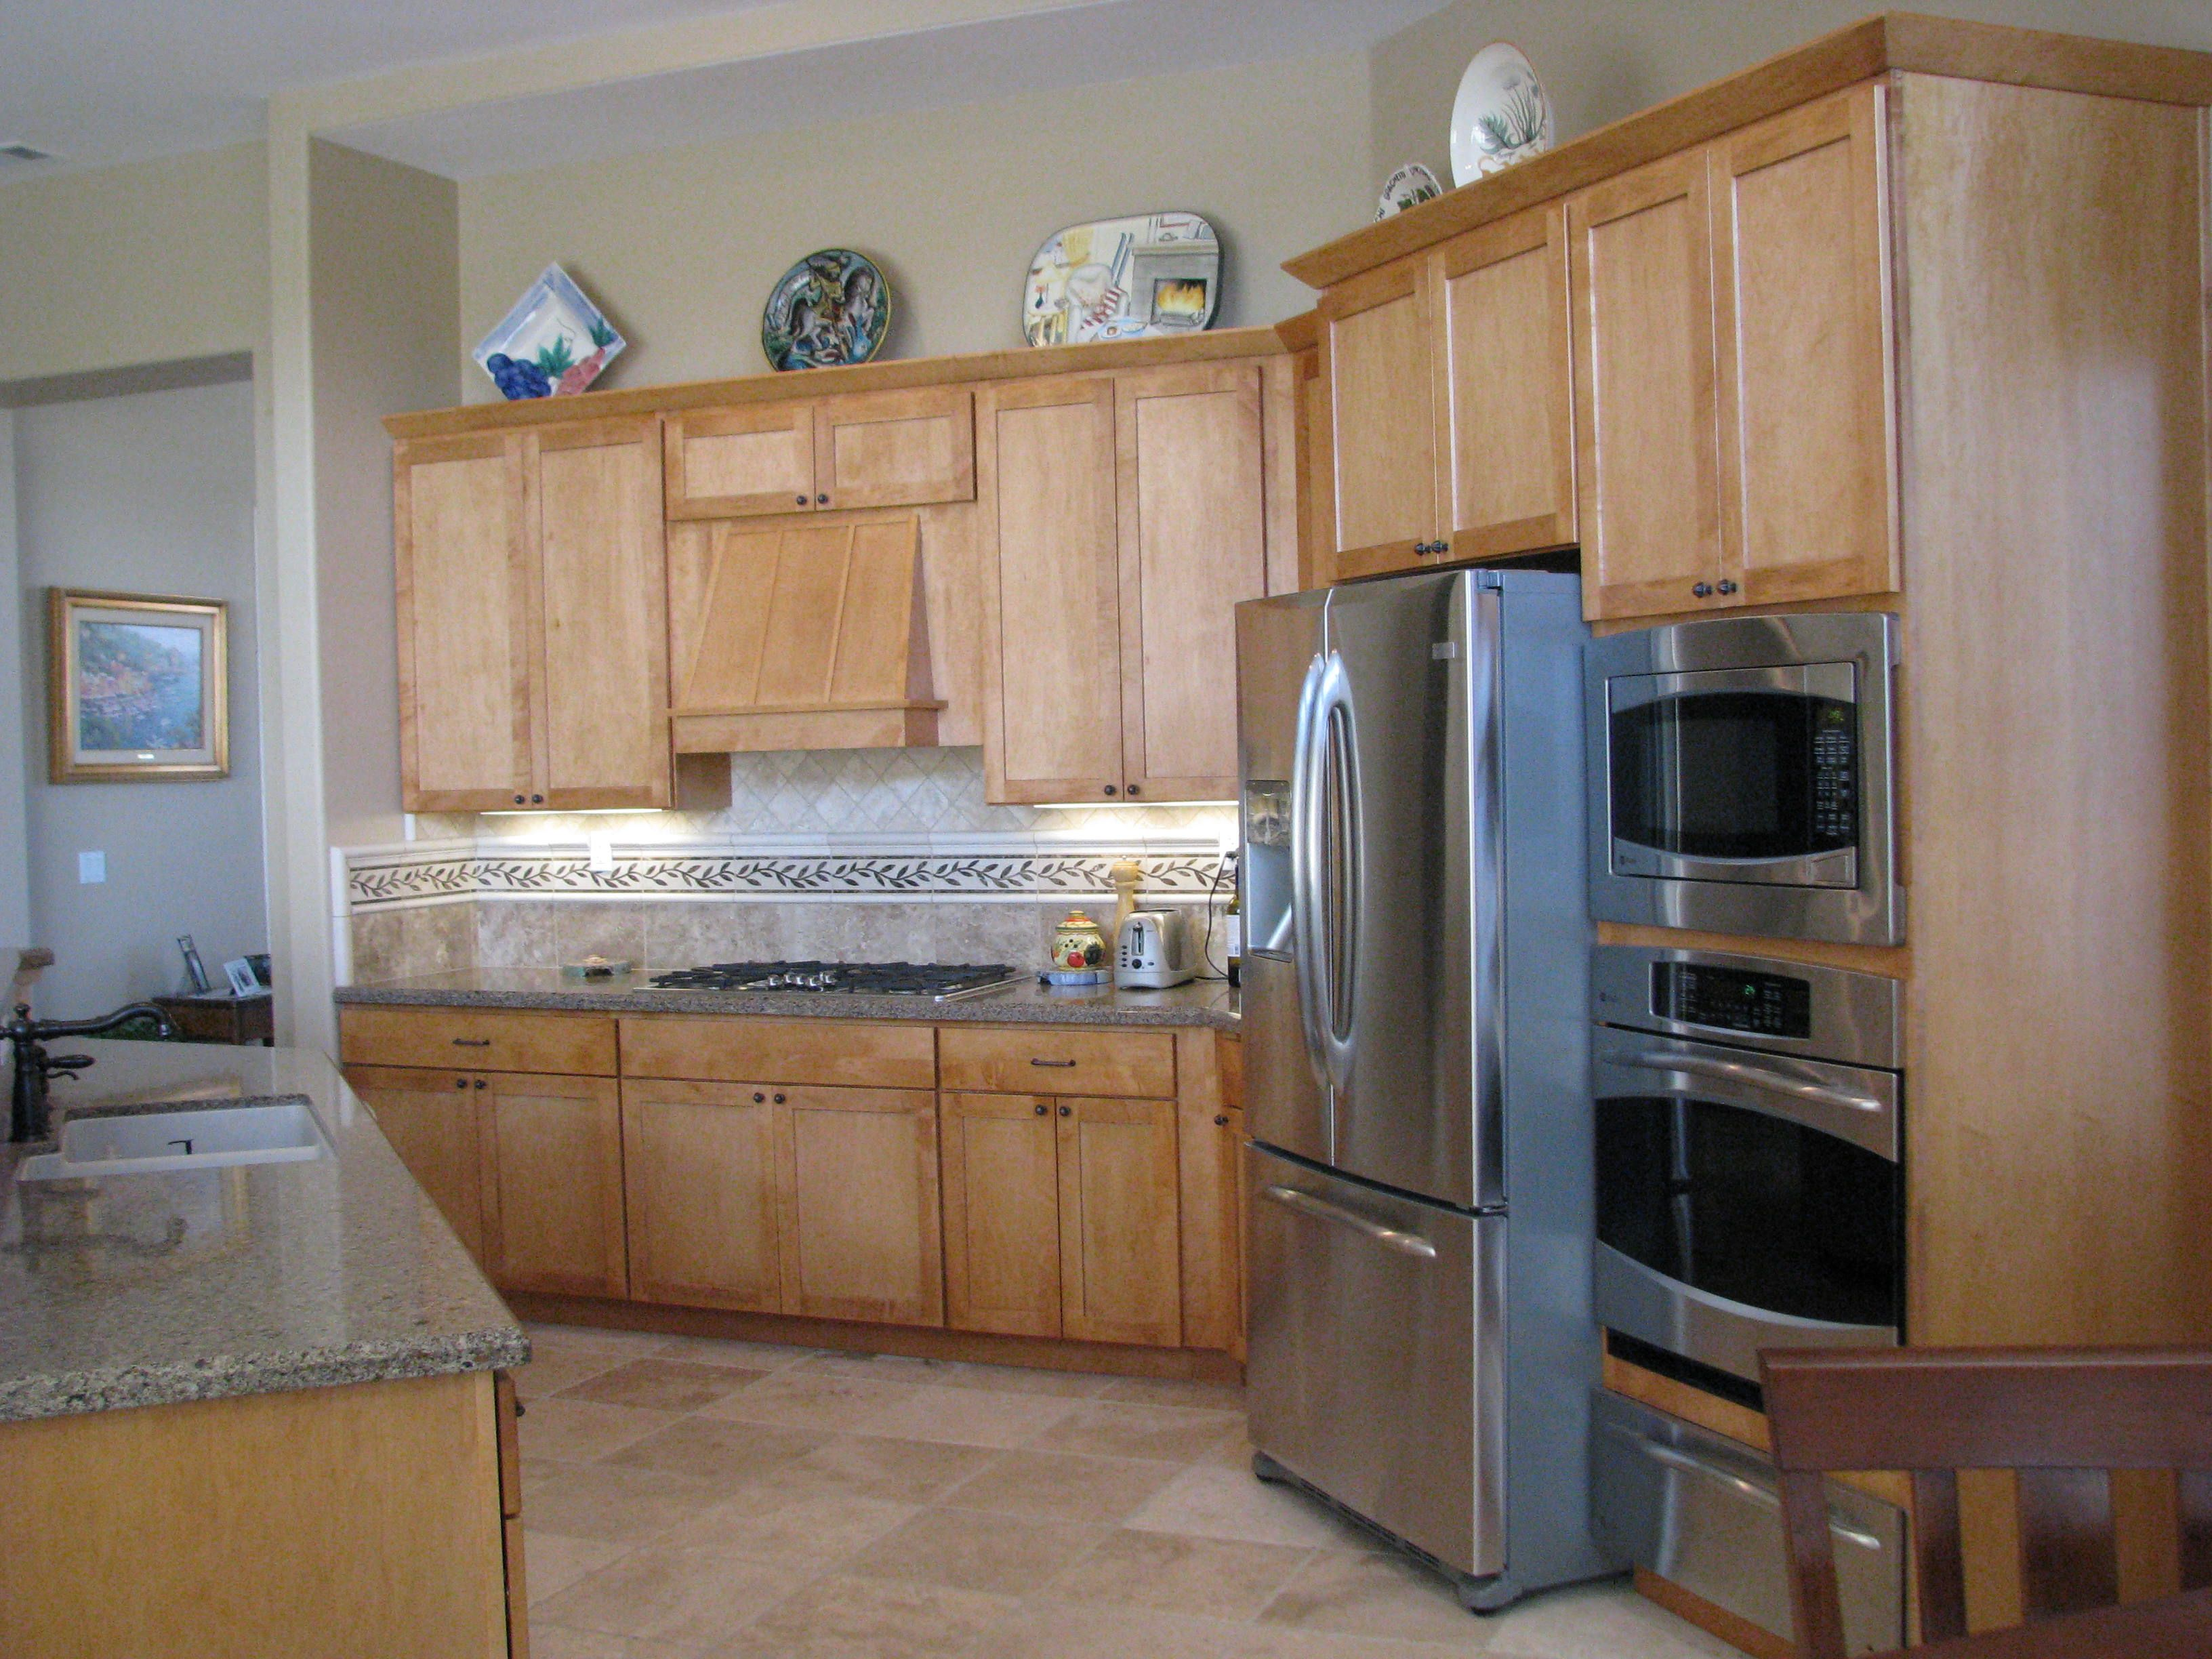 Maple cabinetry, travertine floors and backsplash, Quartz ... on Countertops That Go With Maple Cabinets  id=25219